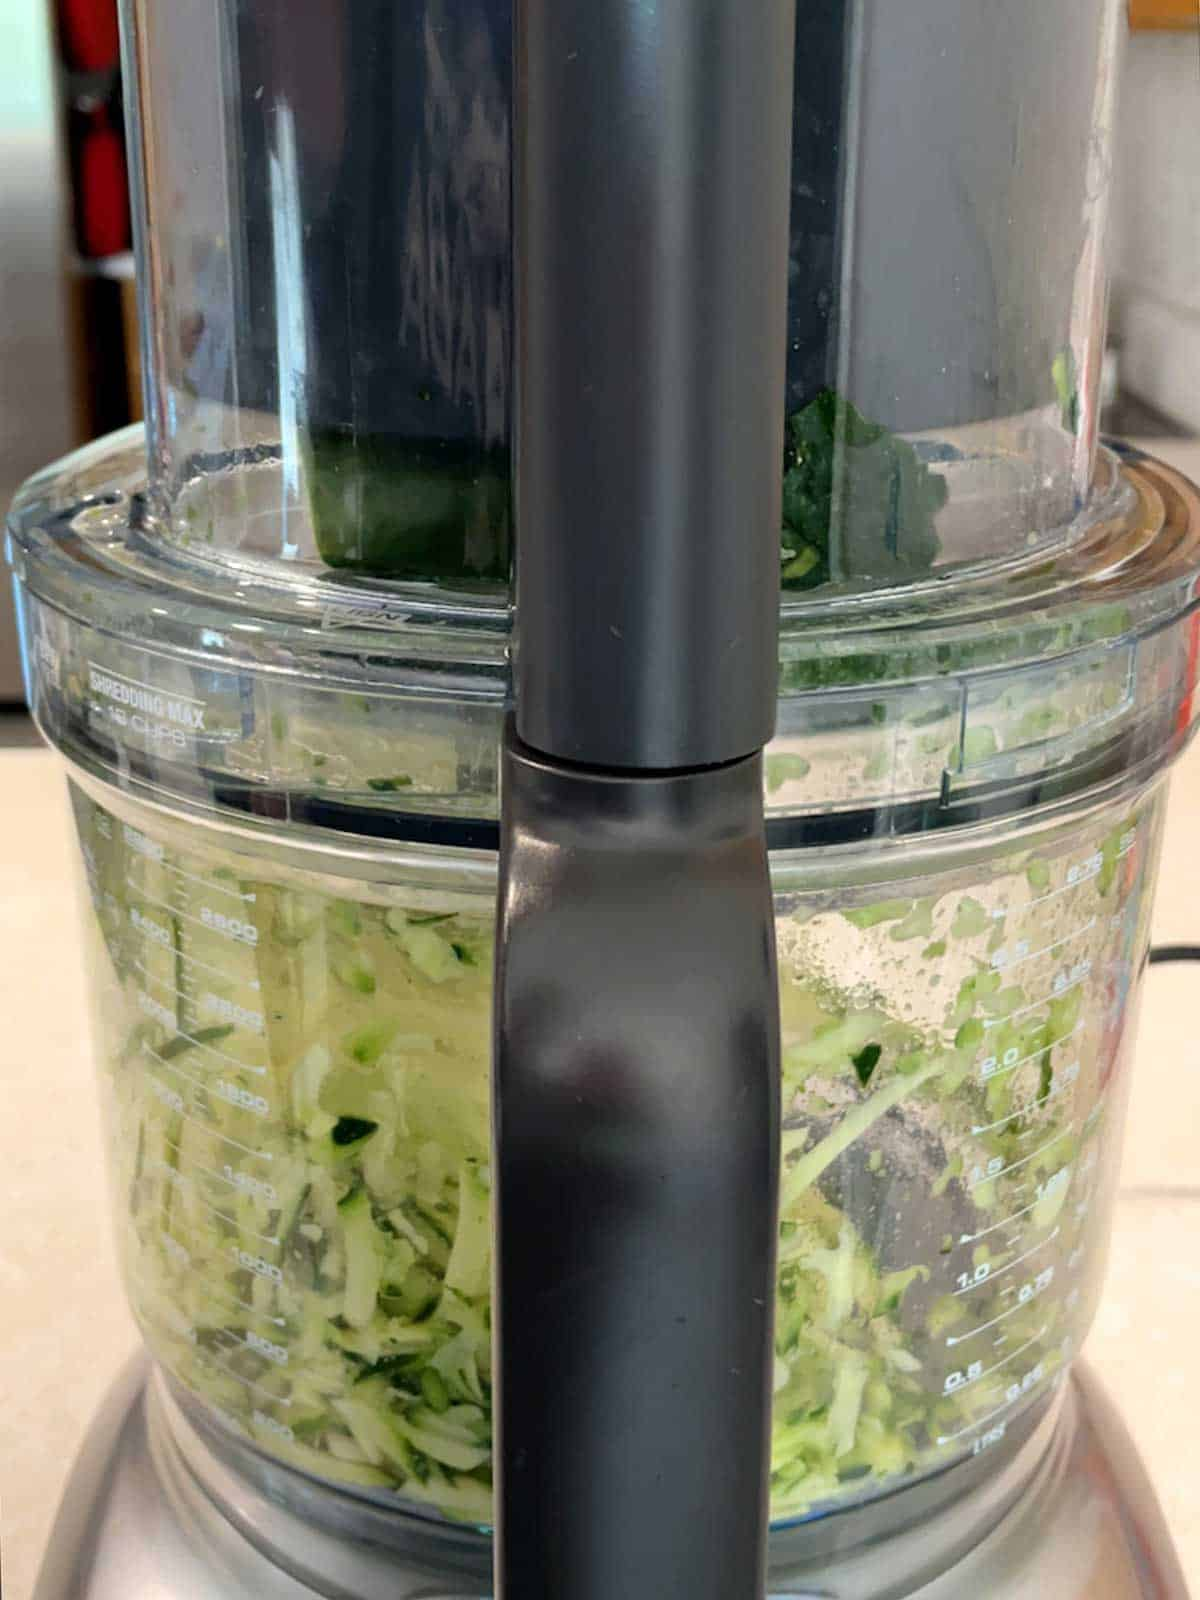 Grating zucchini and onion in food processor